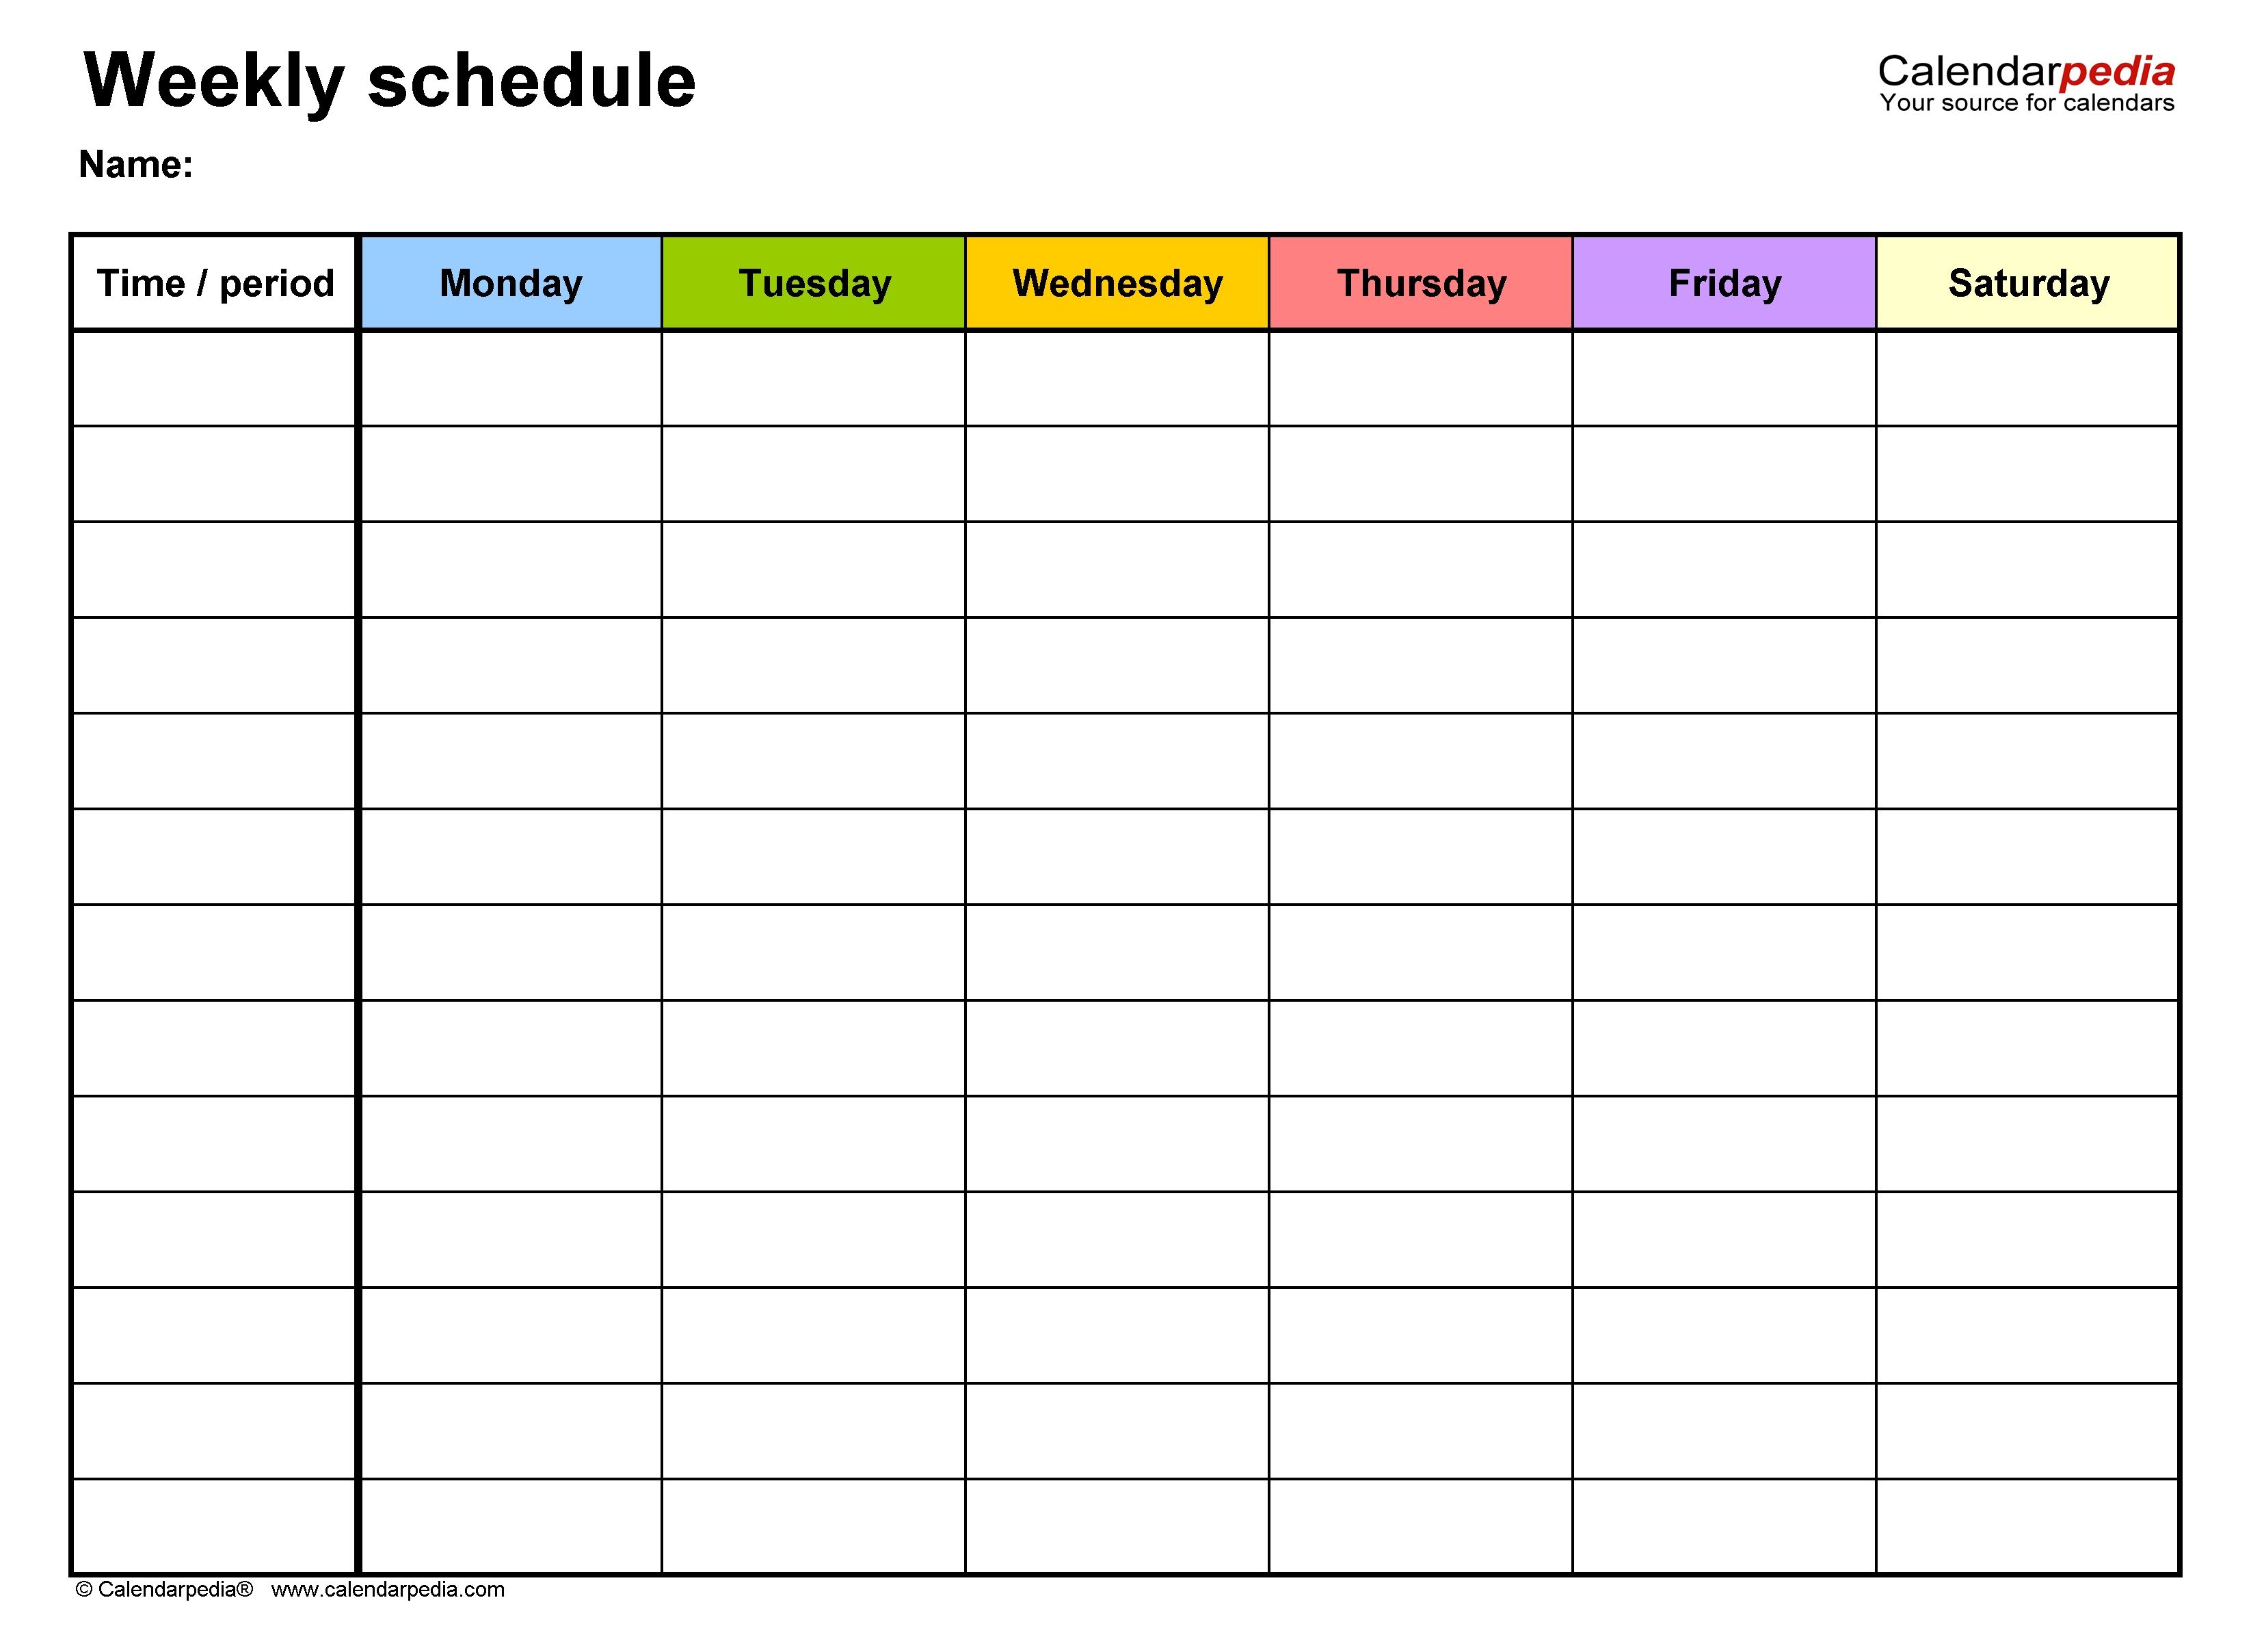 Free Weekly Schedule Templates For Excel - 18 Templates Calendar Template Excel Free